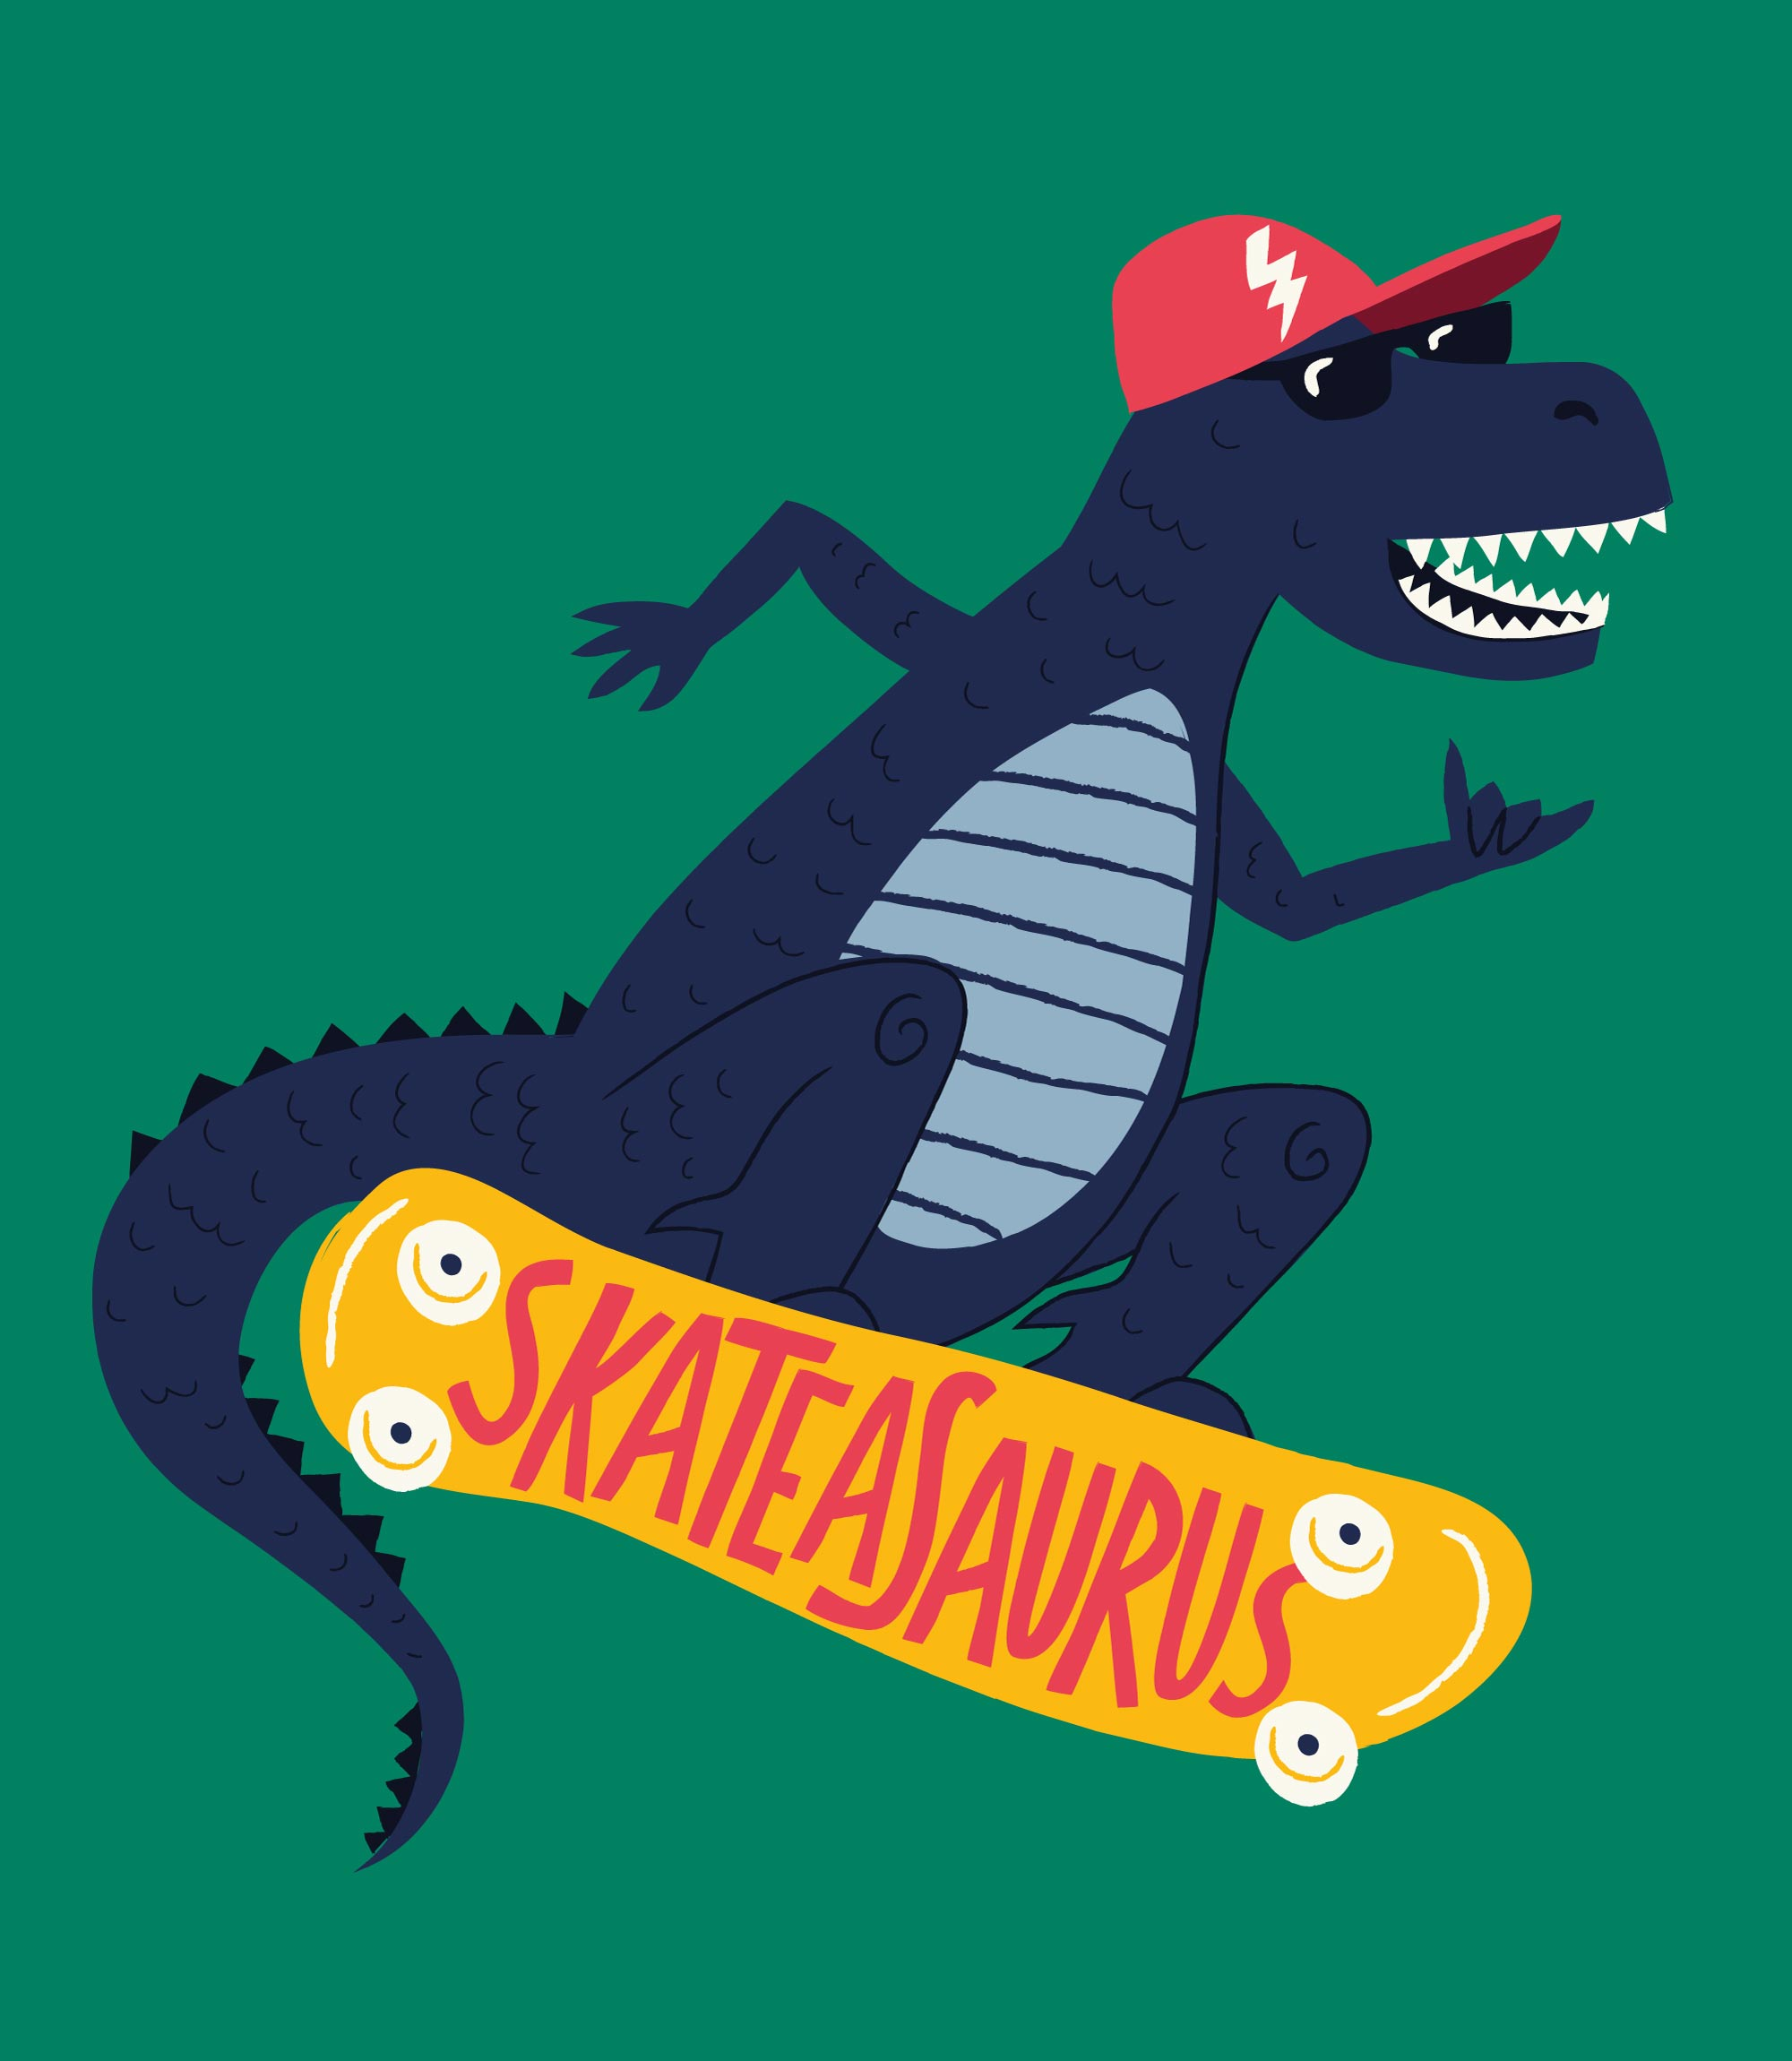 Skateasaurus Tee for Joules by Elly Jahnz